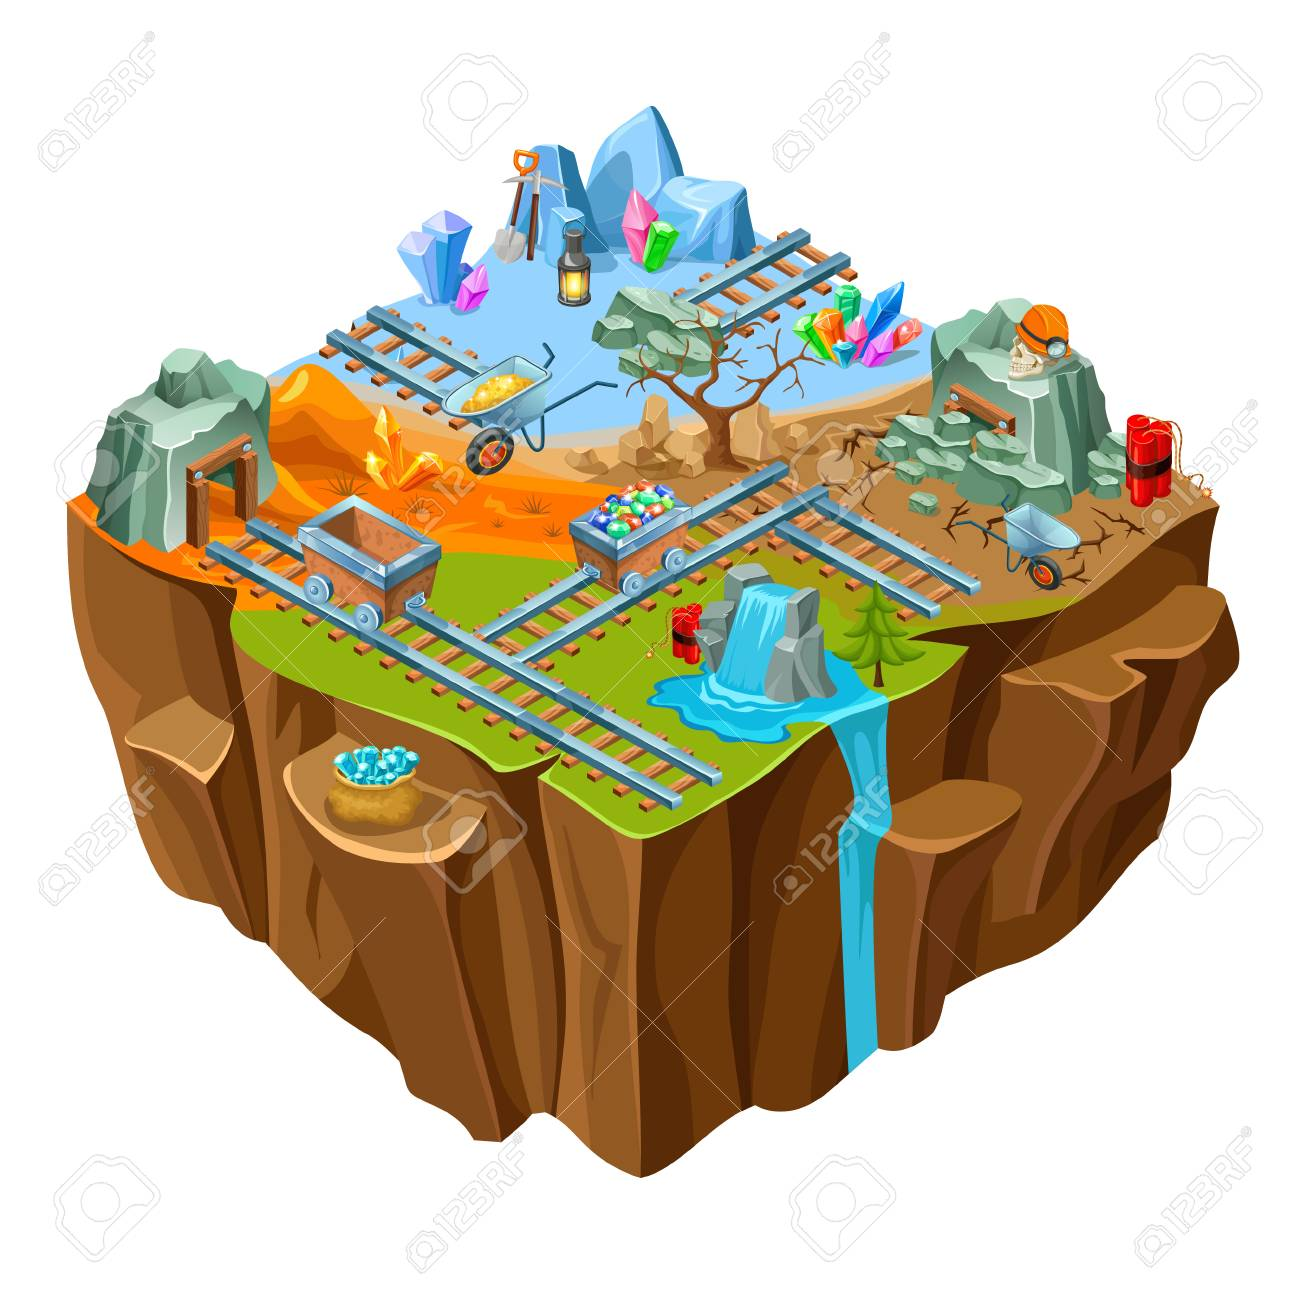 1300x1300 Isometric Mining Game Island Template With Jewels Stones Minerals